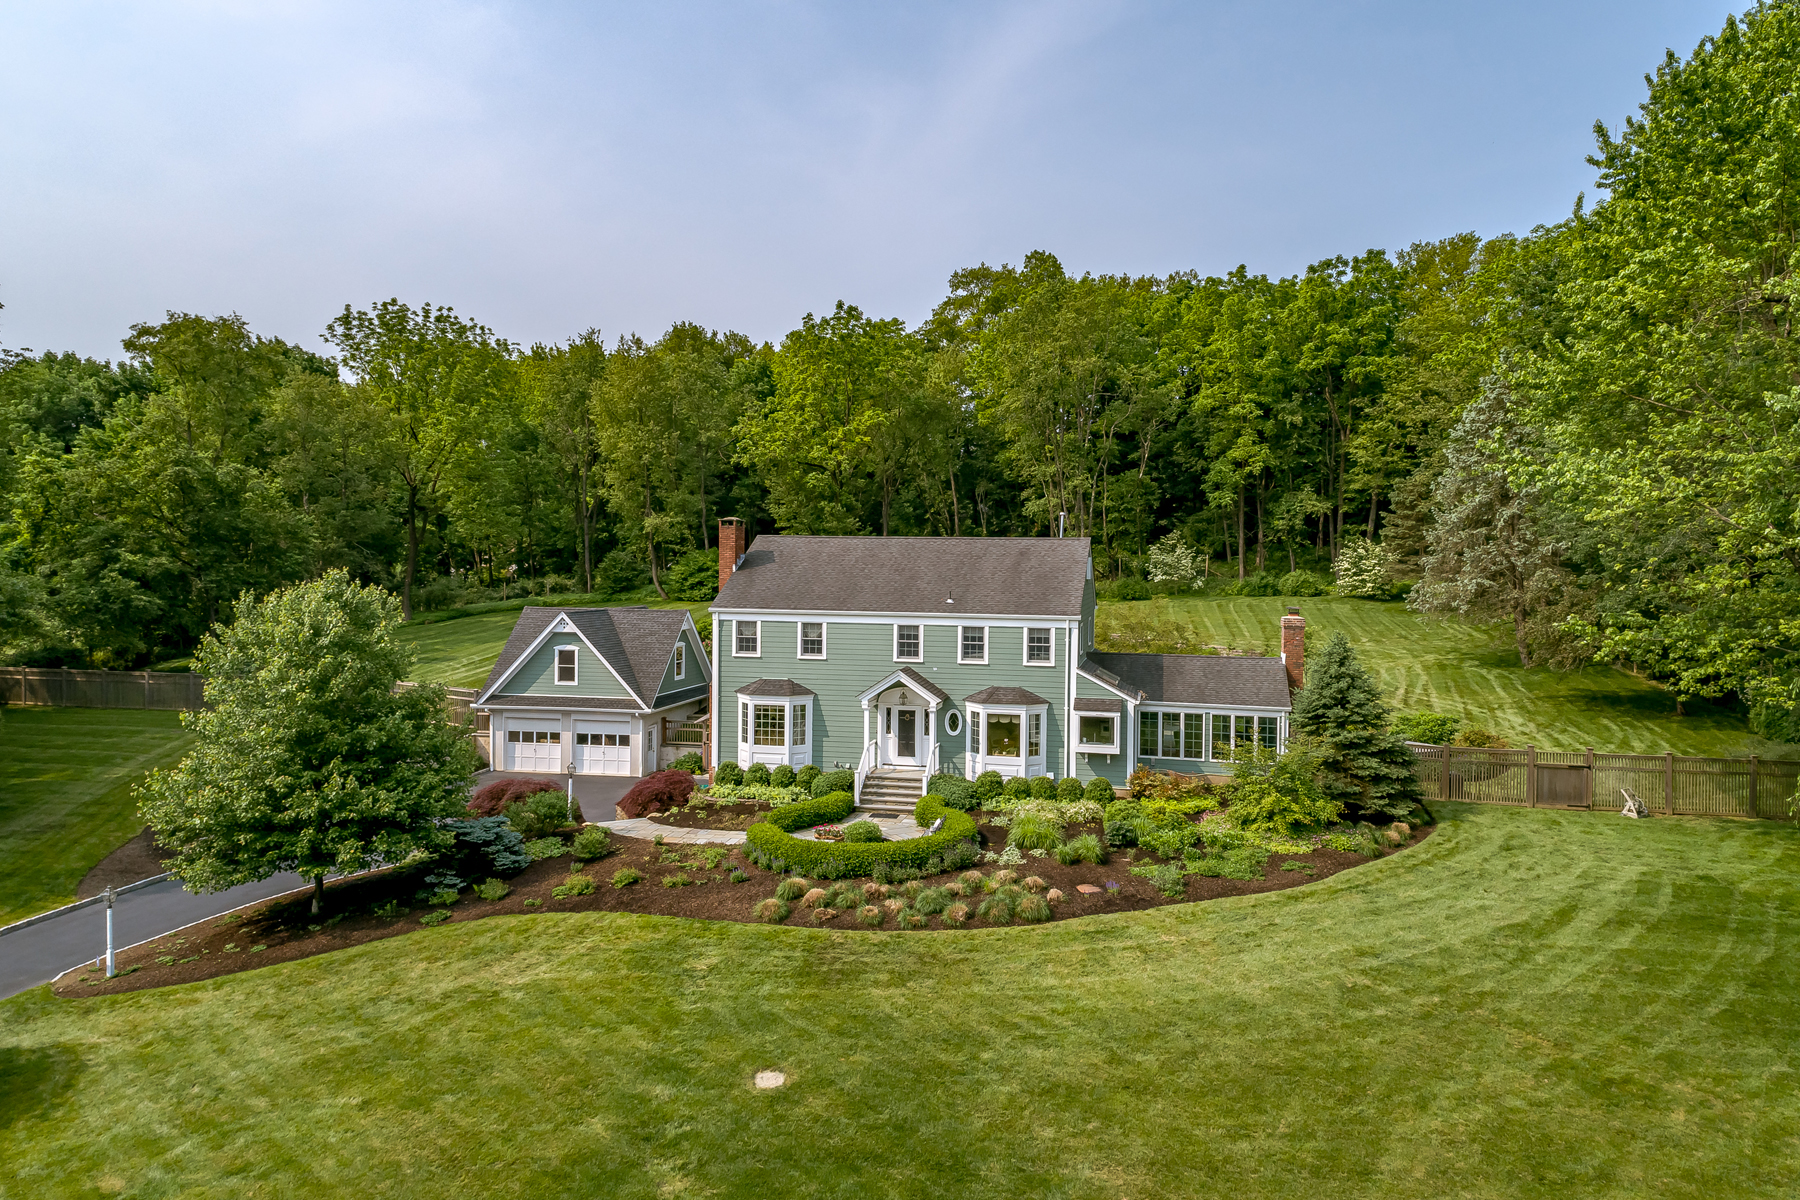 Single Family Homes for Sale at Bucolic mini estate in full bloom 79 Lowery Lane Mendham, New Jersey 07945 United States